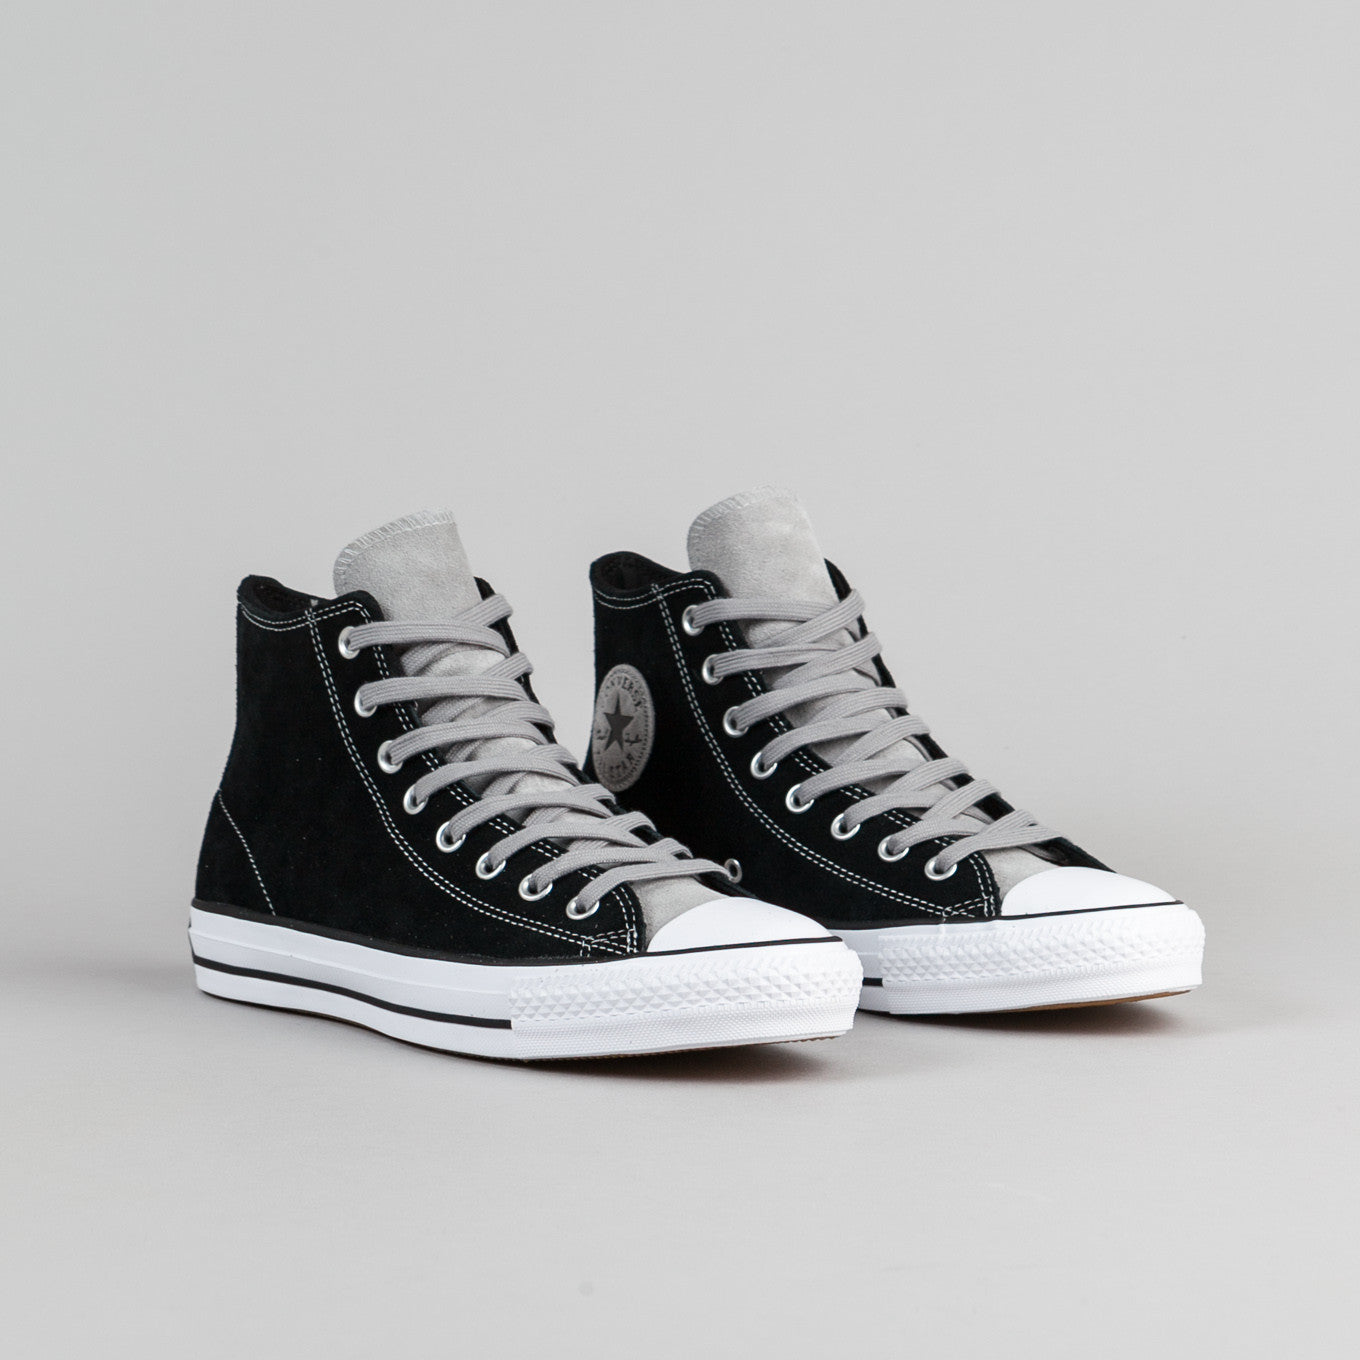 Converse CTAS Pro Hi Shoes - Black / Dolphin / White